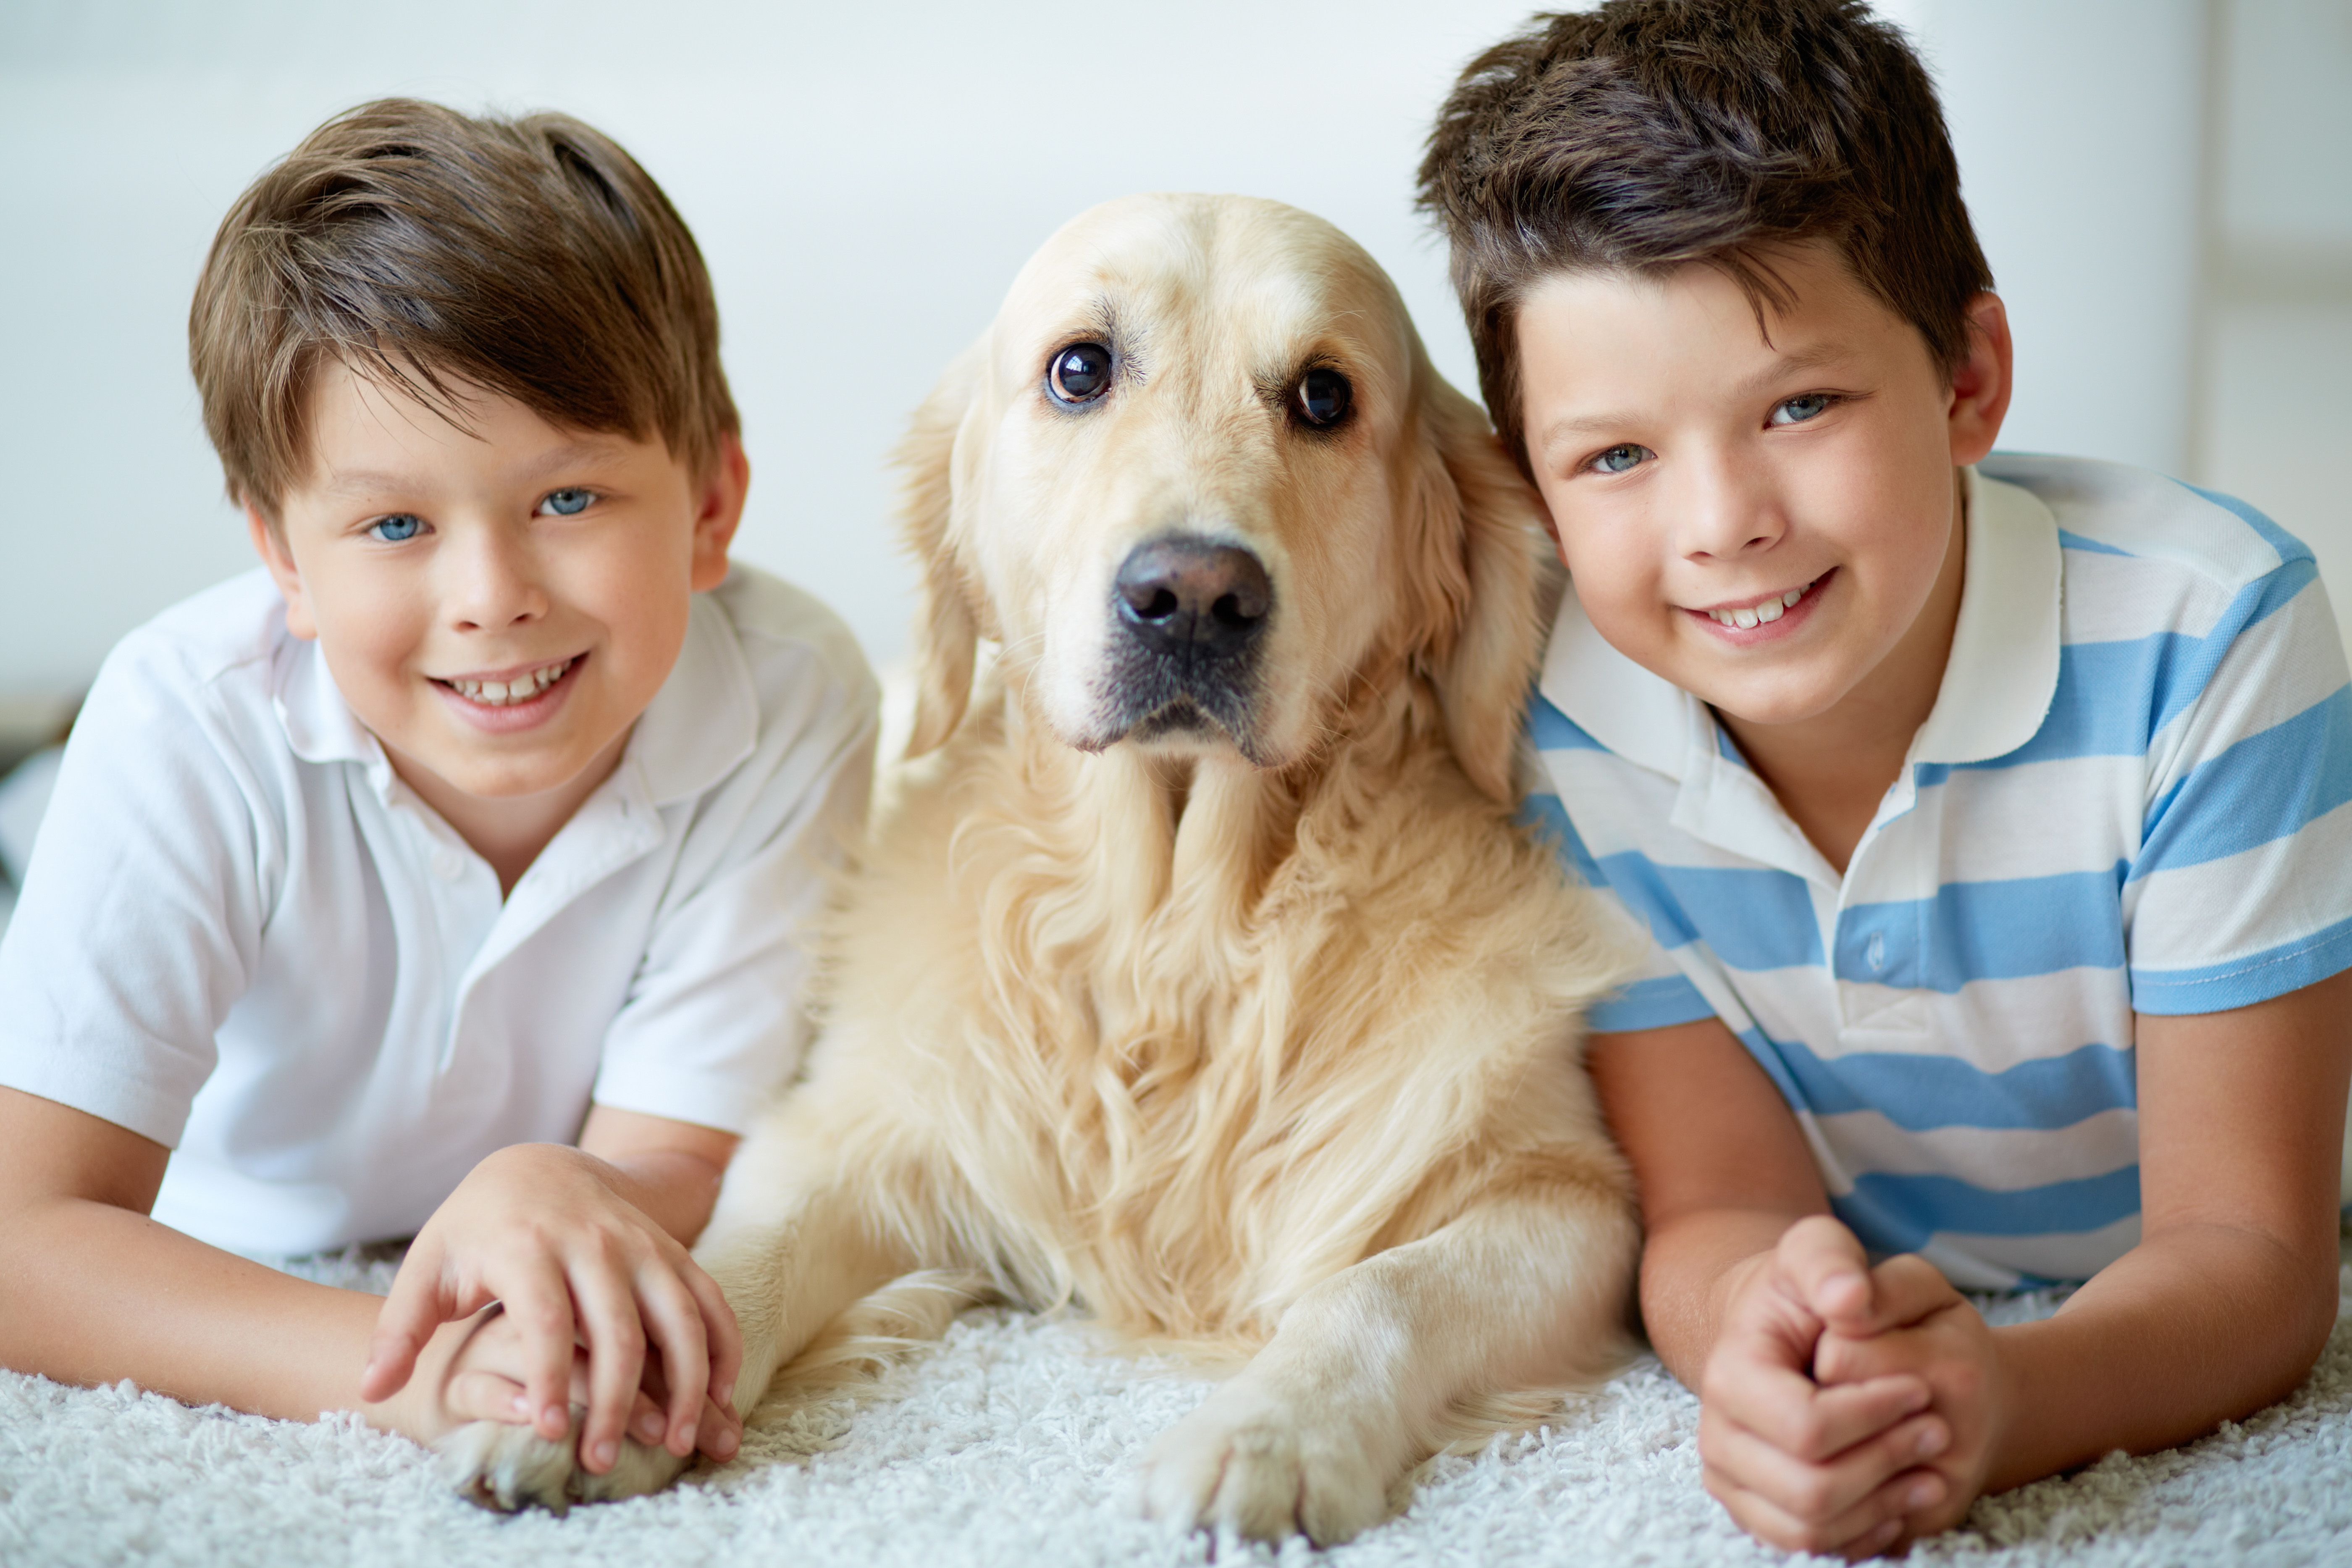 Cheese Pets Dog Family Child Friendly Dogs Low Maintenance